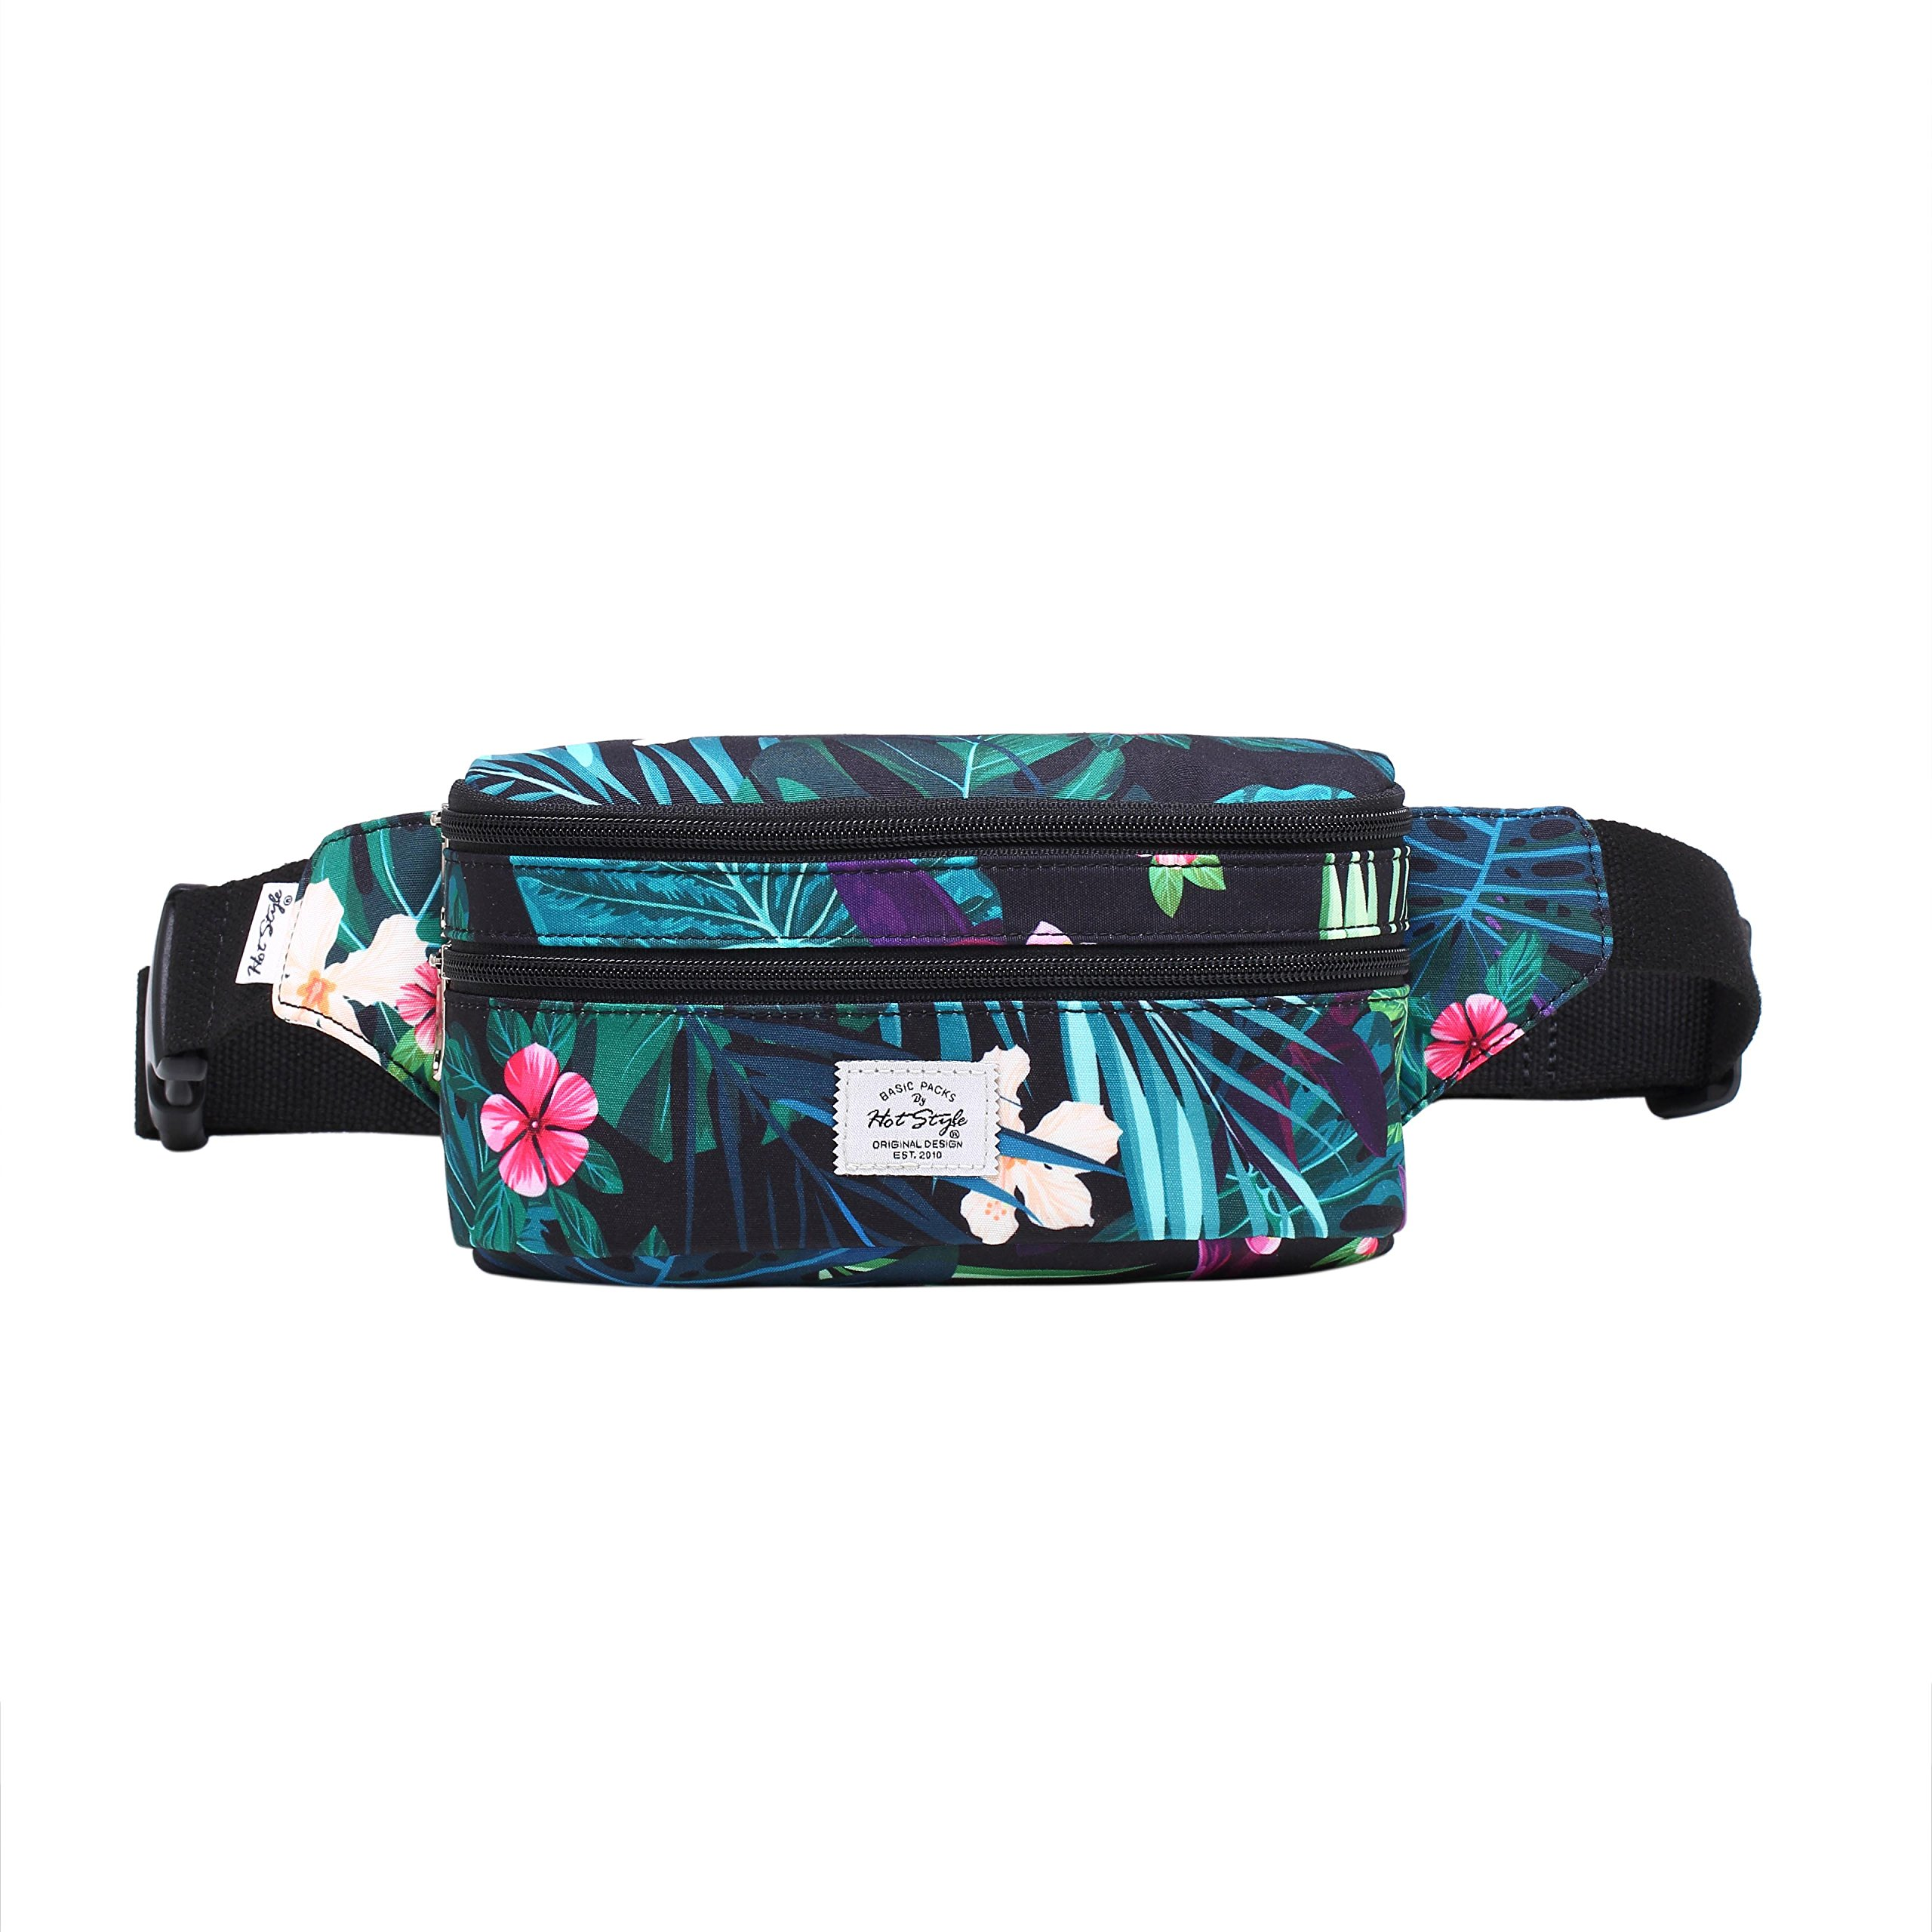 Best Rated in Fashion Waist Packs   Helpful Customer Reviews ... 177d6f6046edc